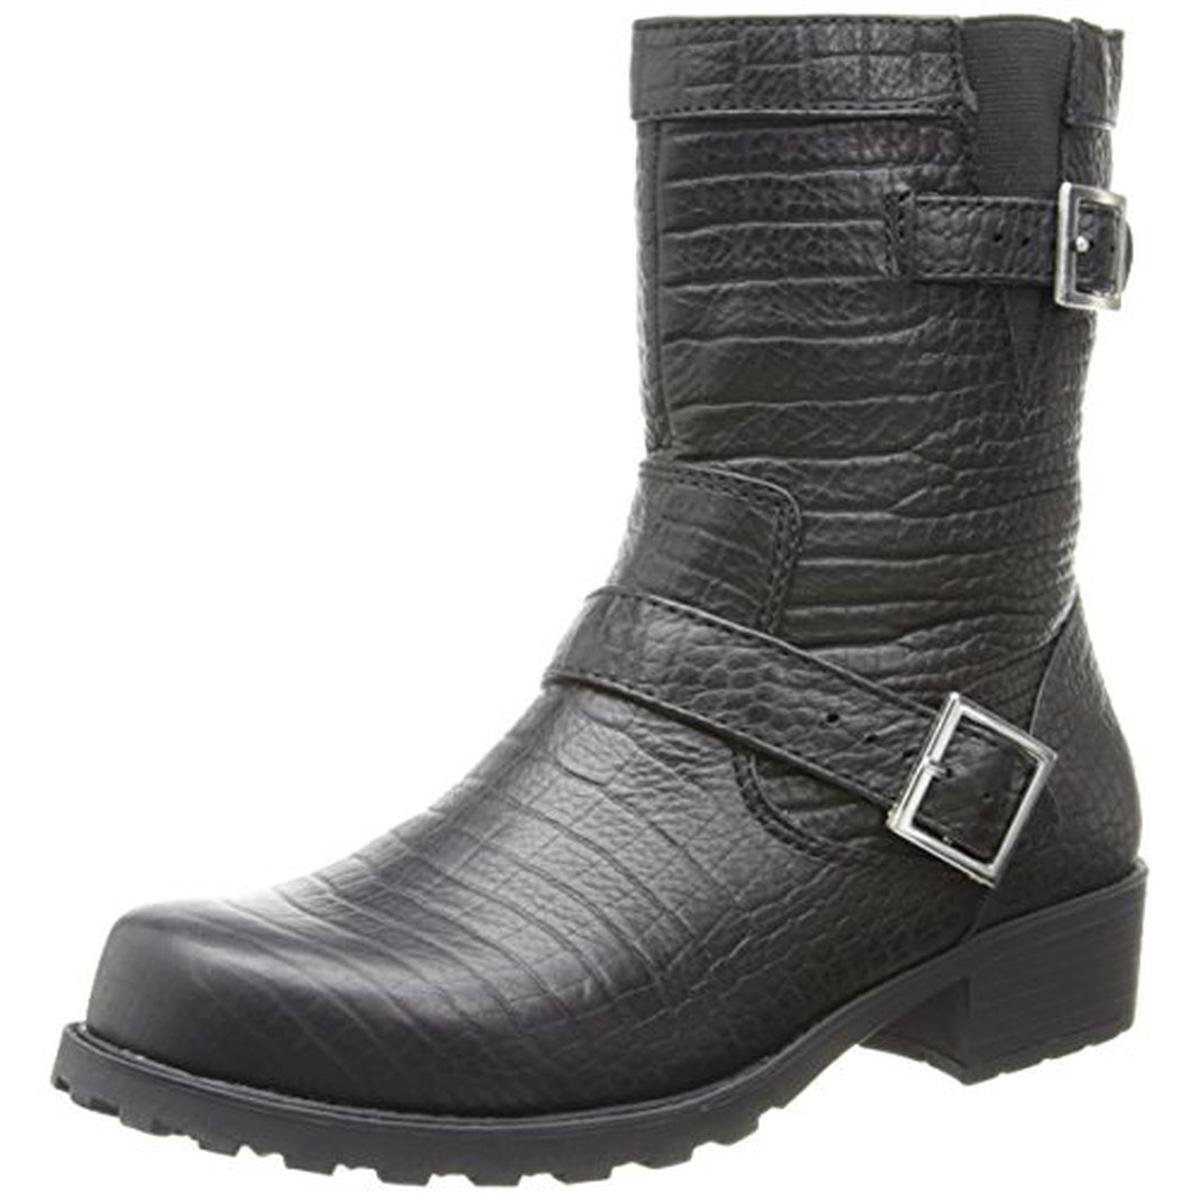 SoftWalk Womens Bellville Leather Mid-Calf Motorcycle Boots by SoftWalk